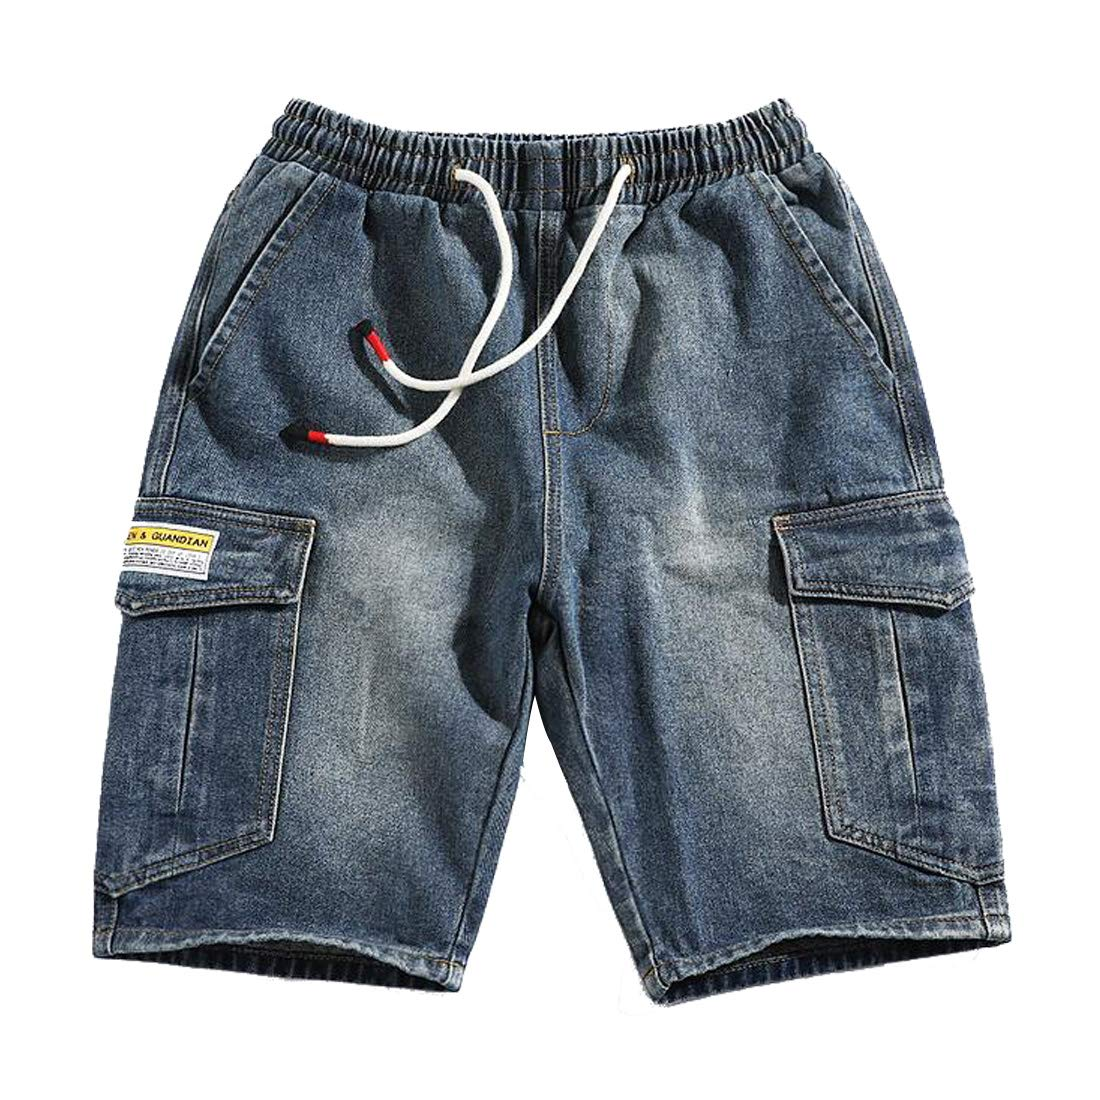 Hzcx Fashion Mens Multi-Pockets Elastic Waist Above Knee Cargo Denim Shorts